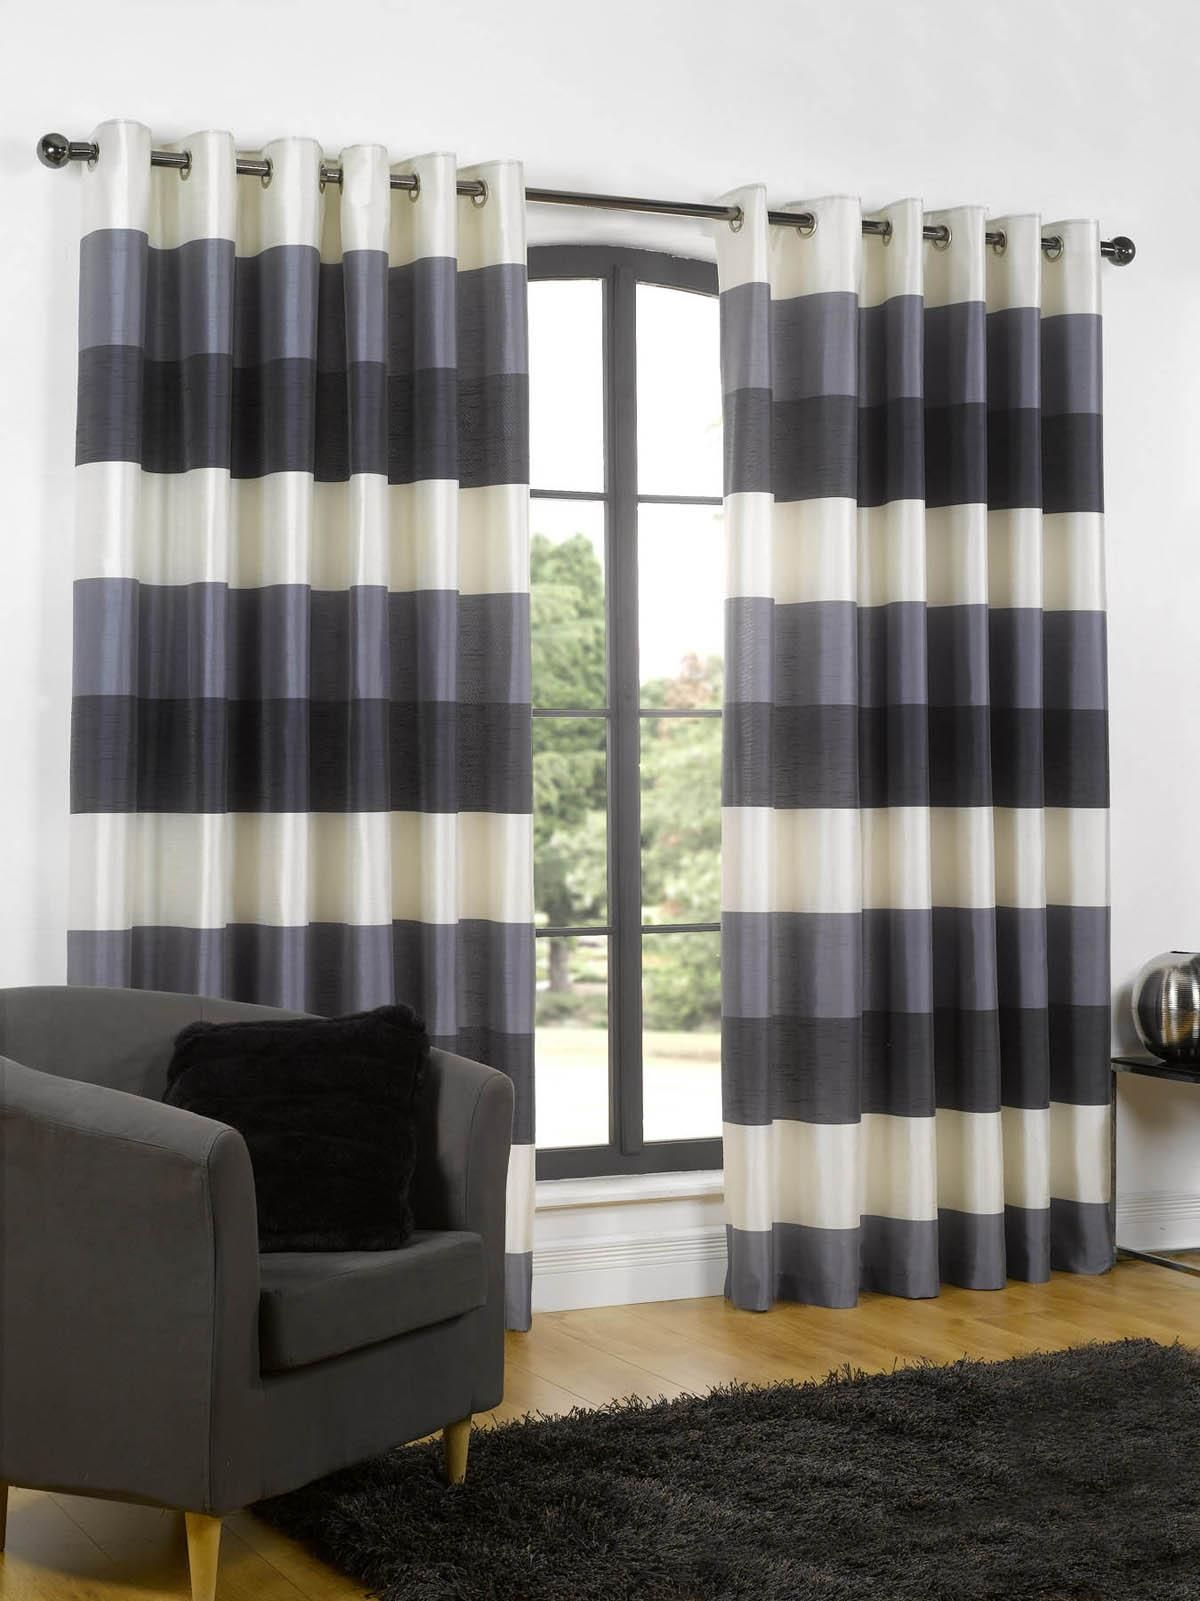 Navy blue bedroom curtains - Curtains